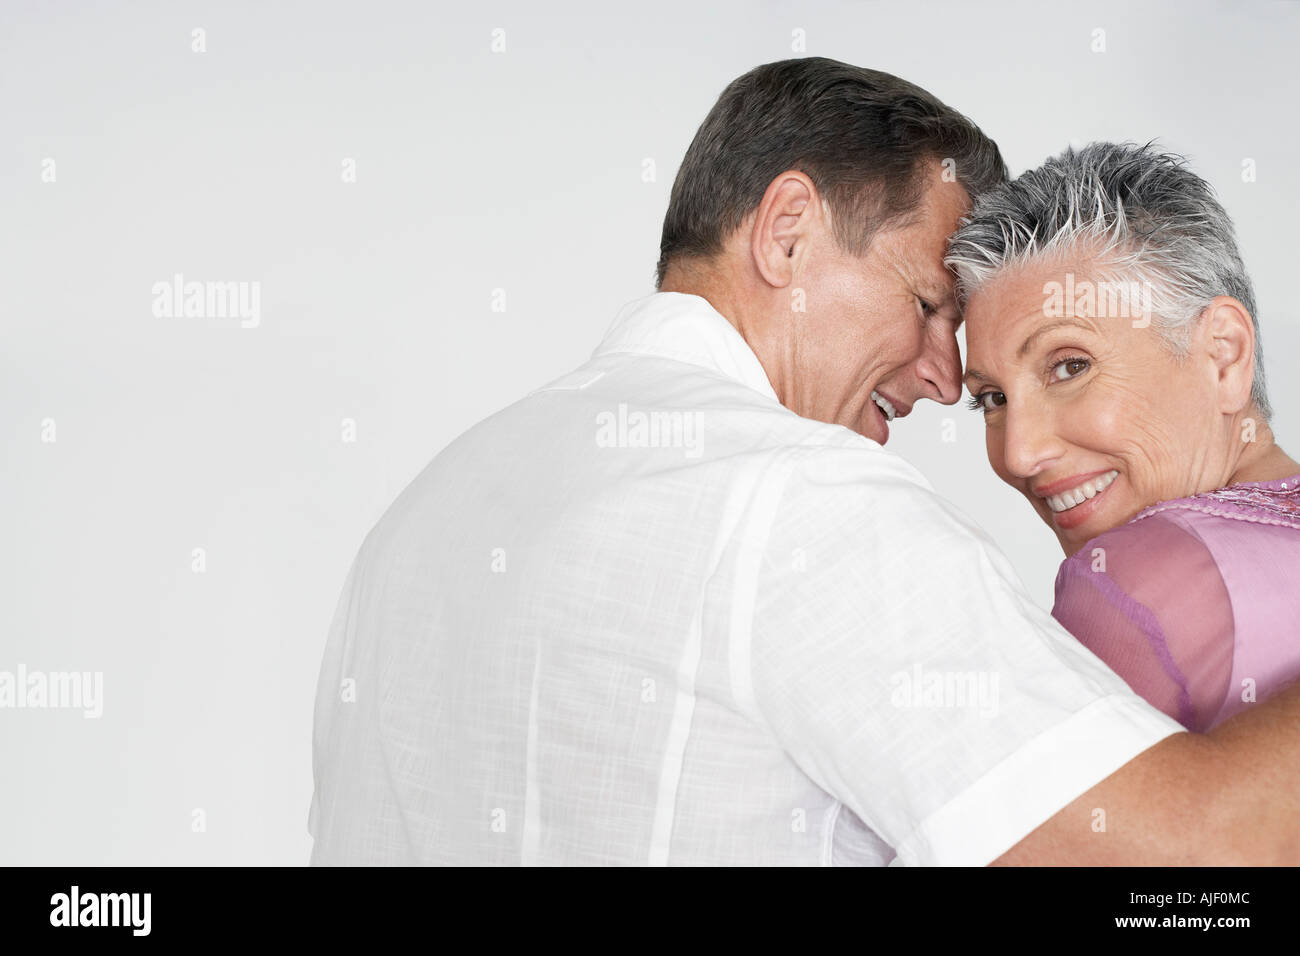 Couple embracing against white background, portrait - Stock Image